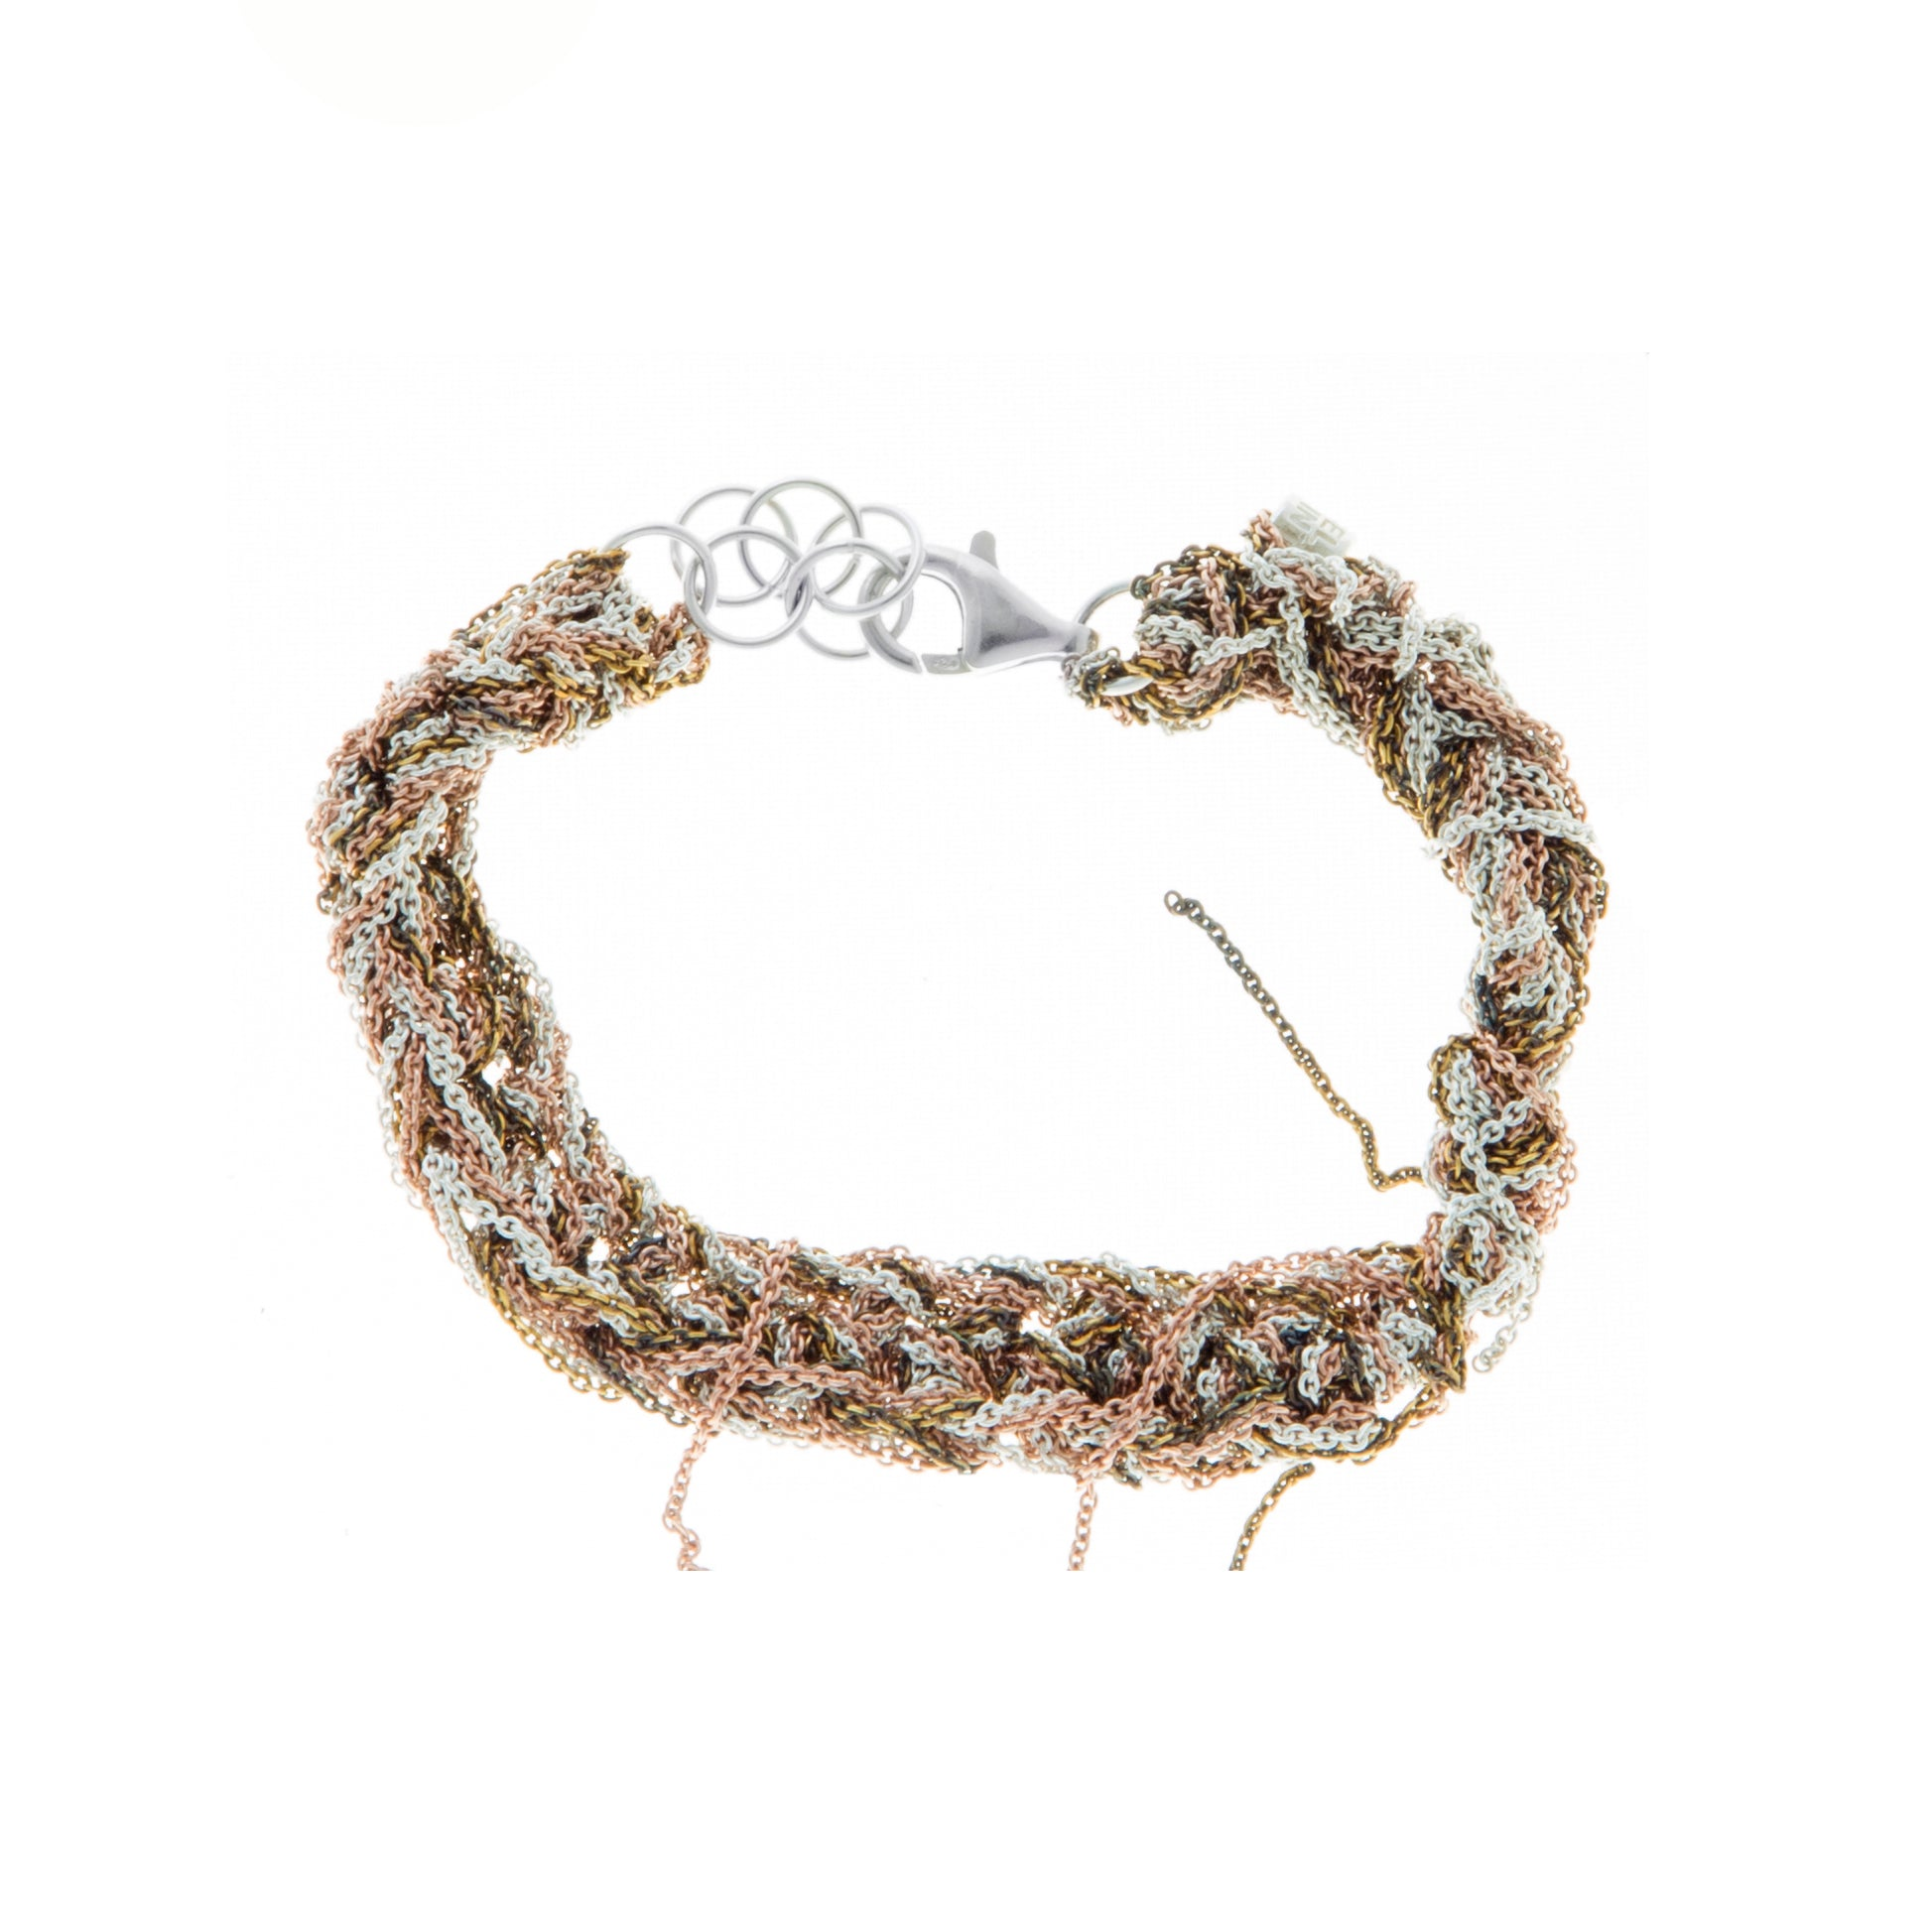 Tennis Bracelet in Rose Gold + Burnt Gold + Silver w/Lobster Clasp